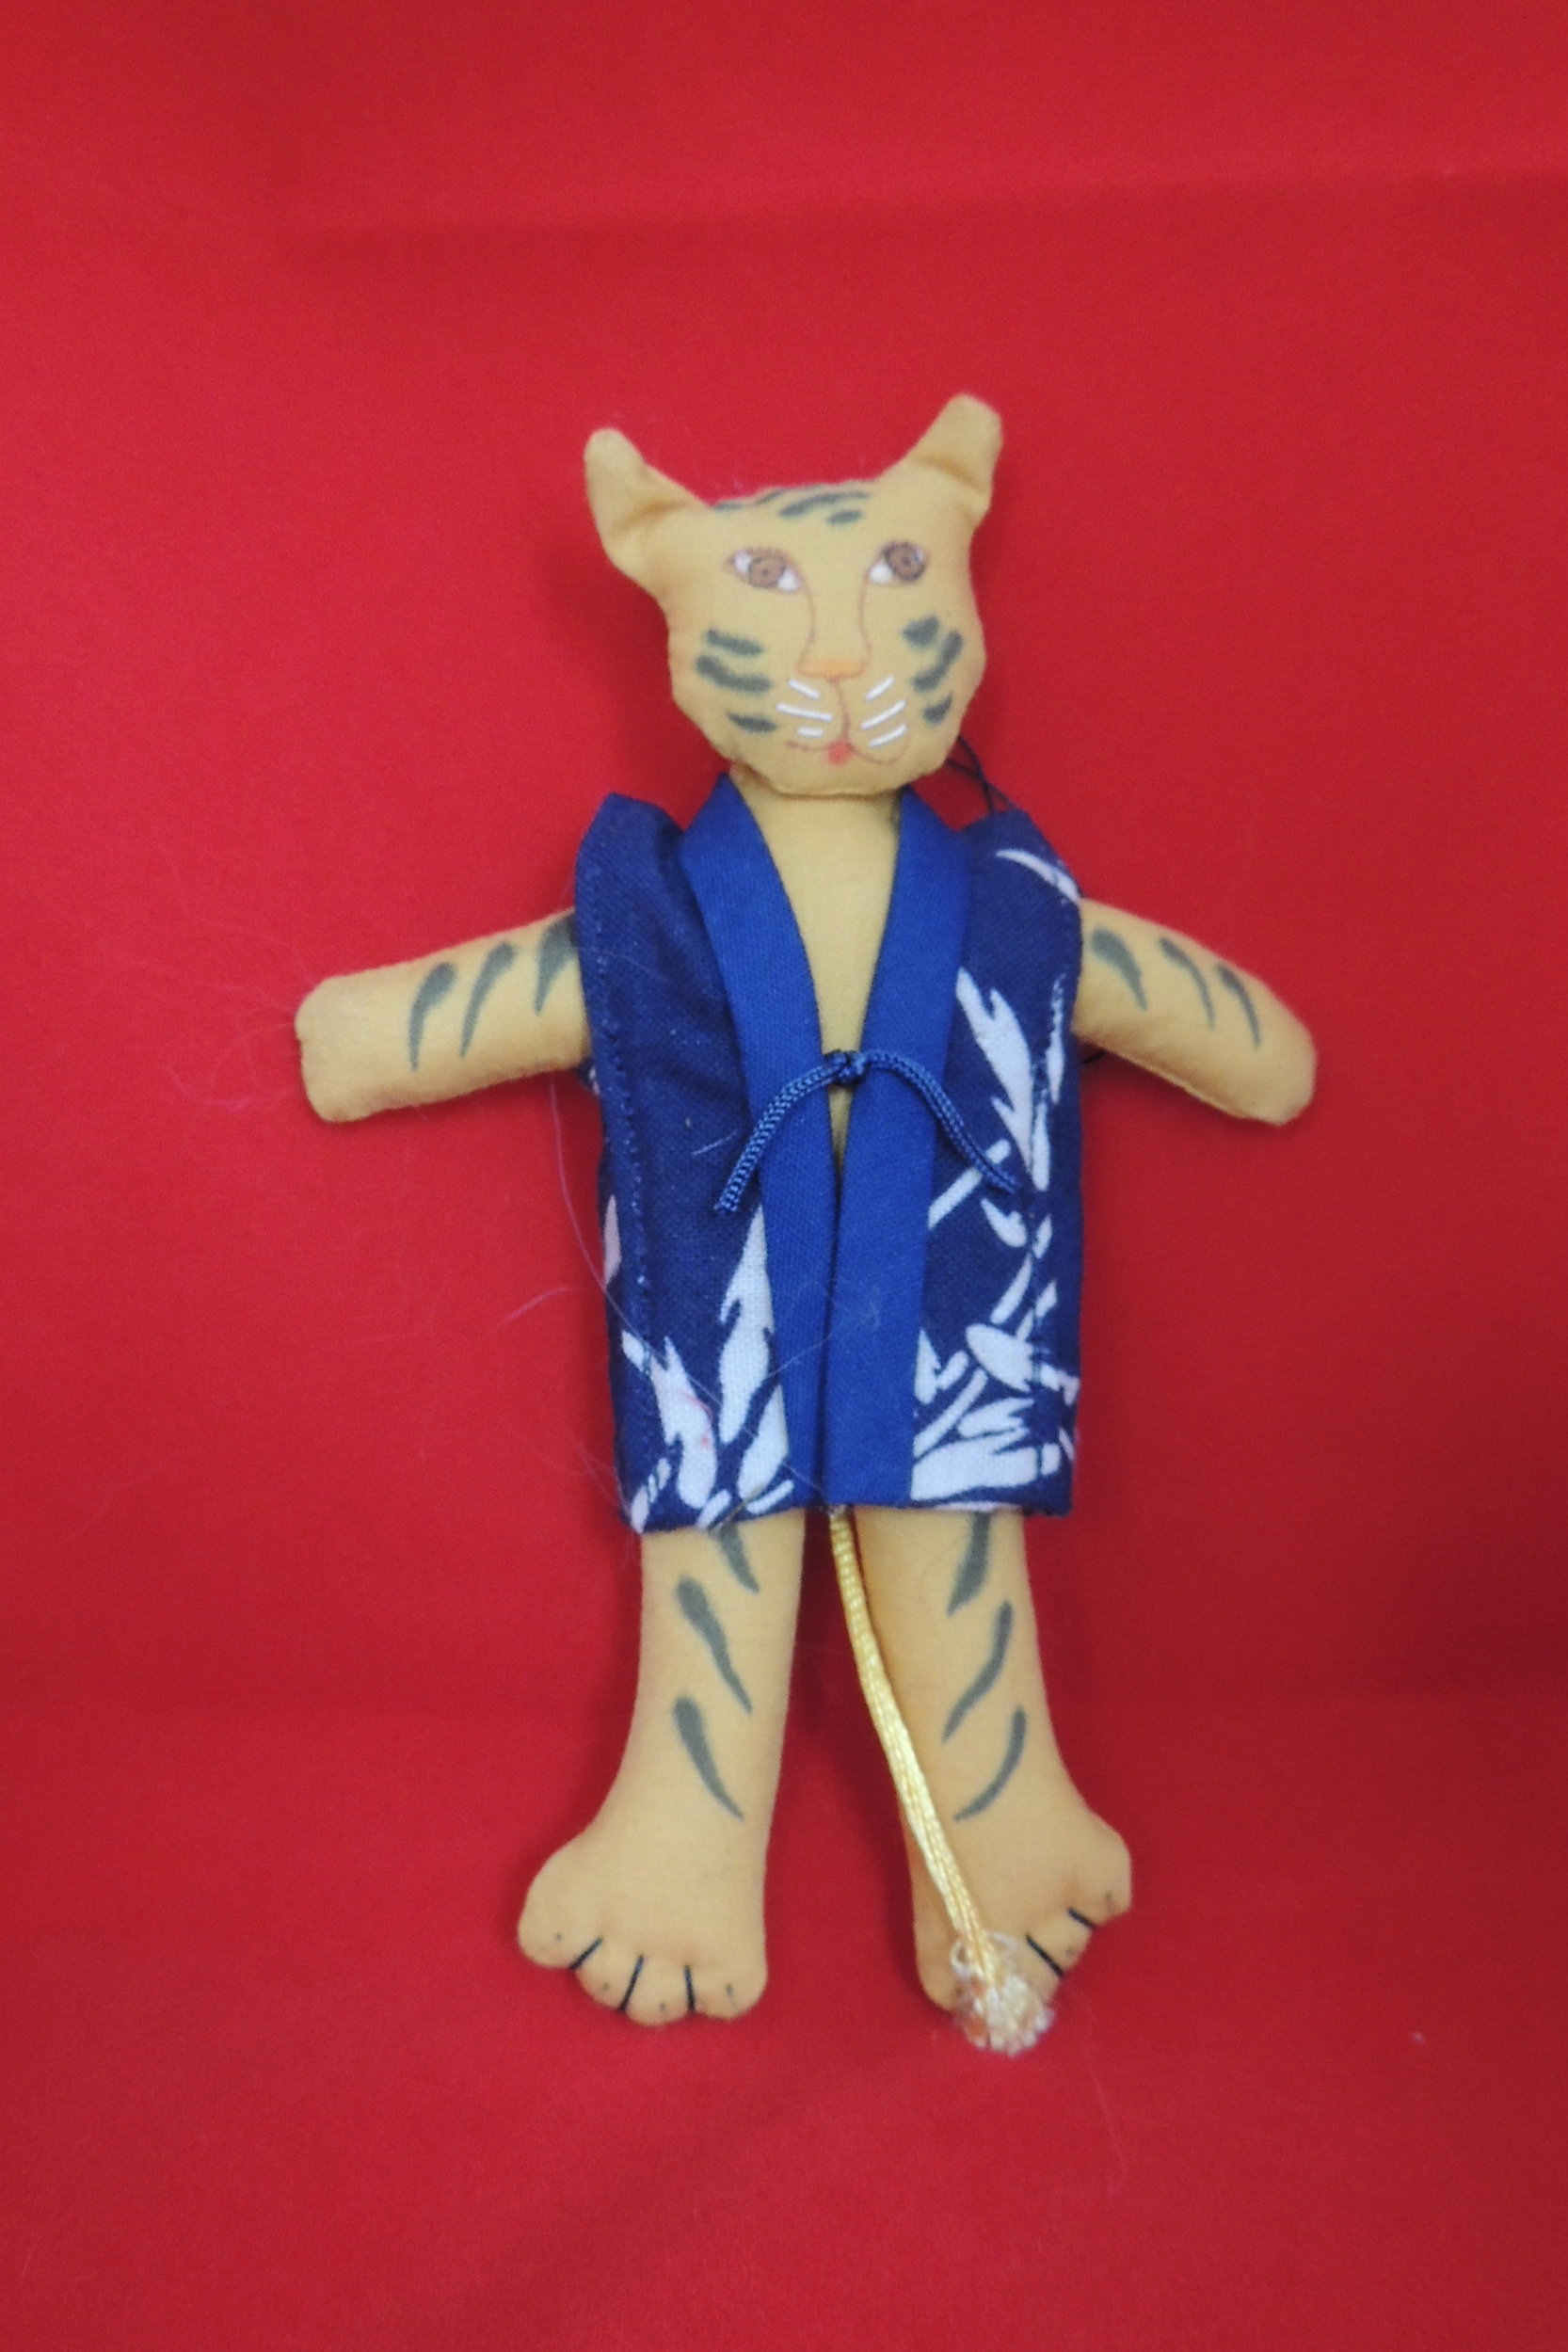 Ornament – Year of the Tiger